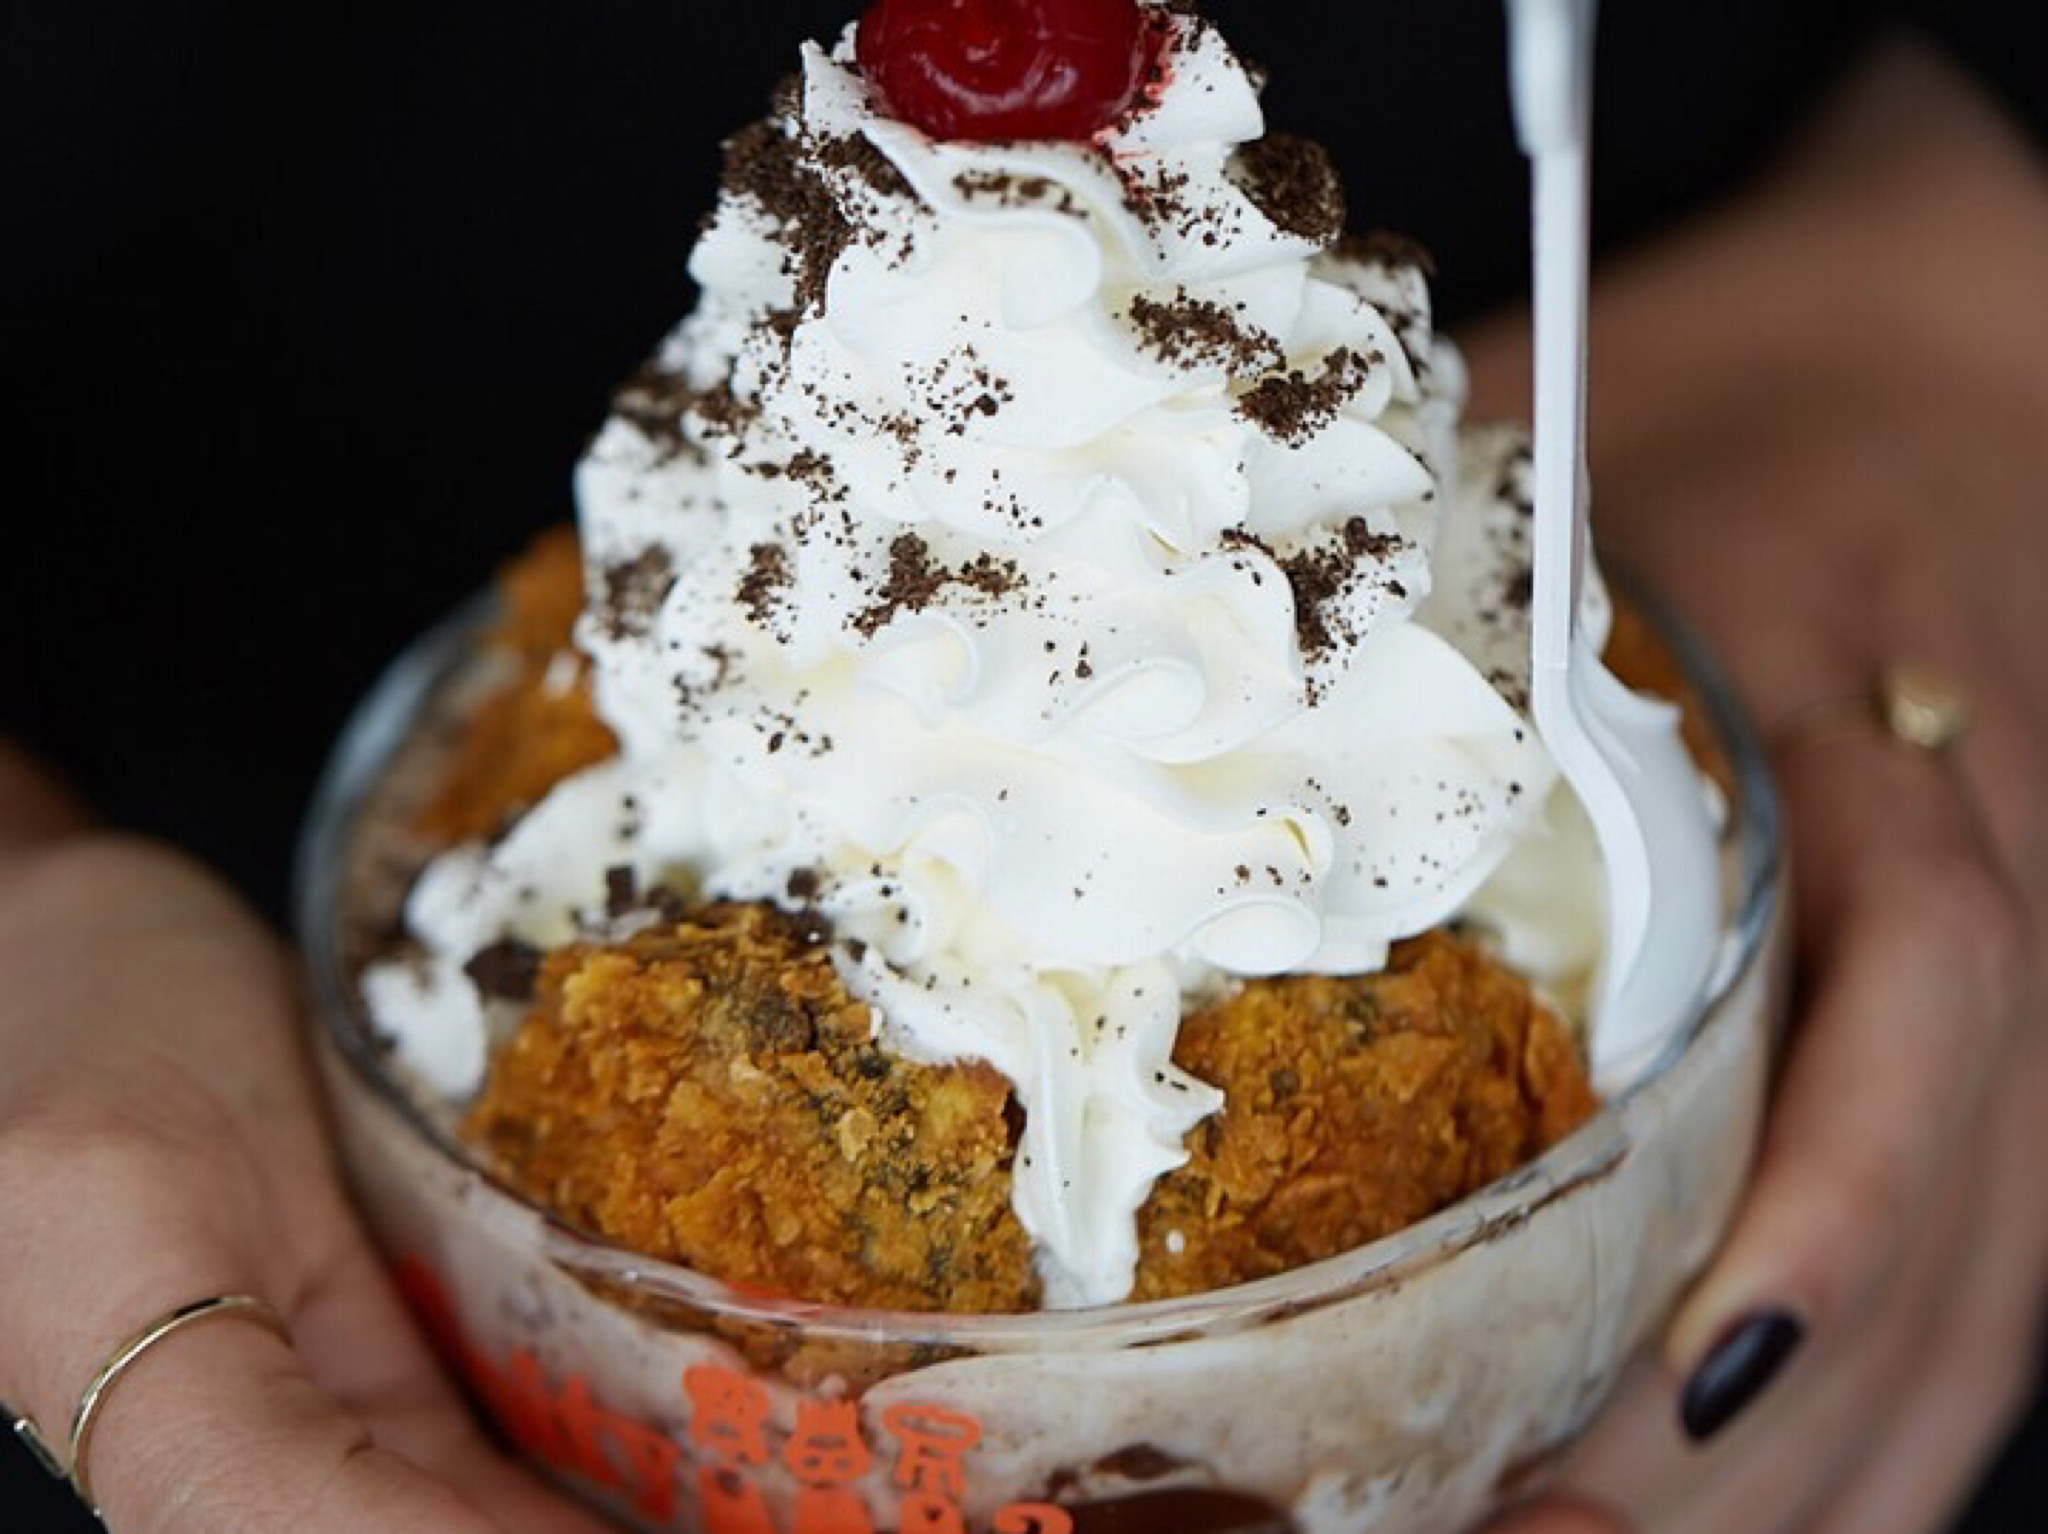 Deep Fried Oreos & Ice Cream at Serendipity 3